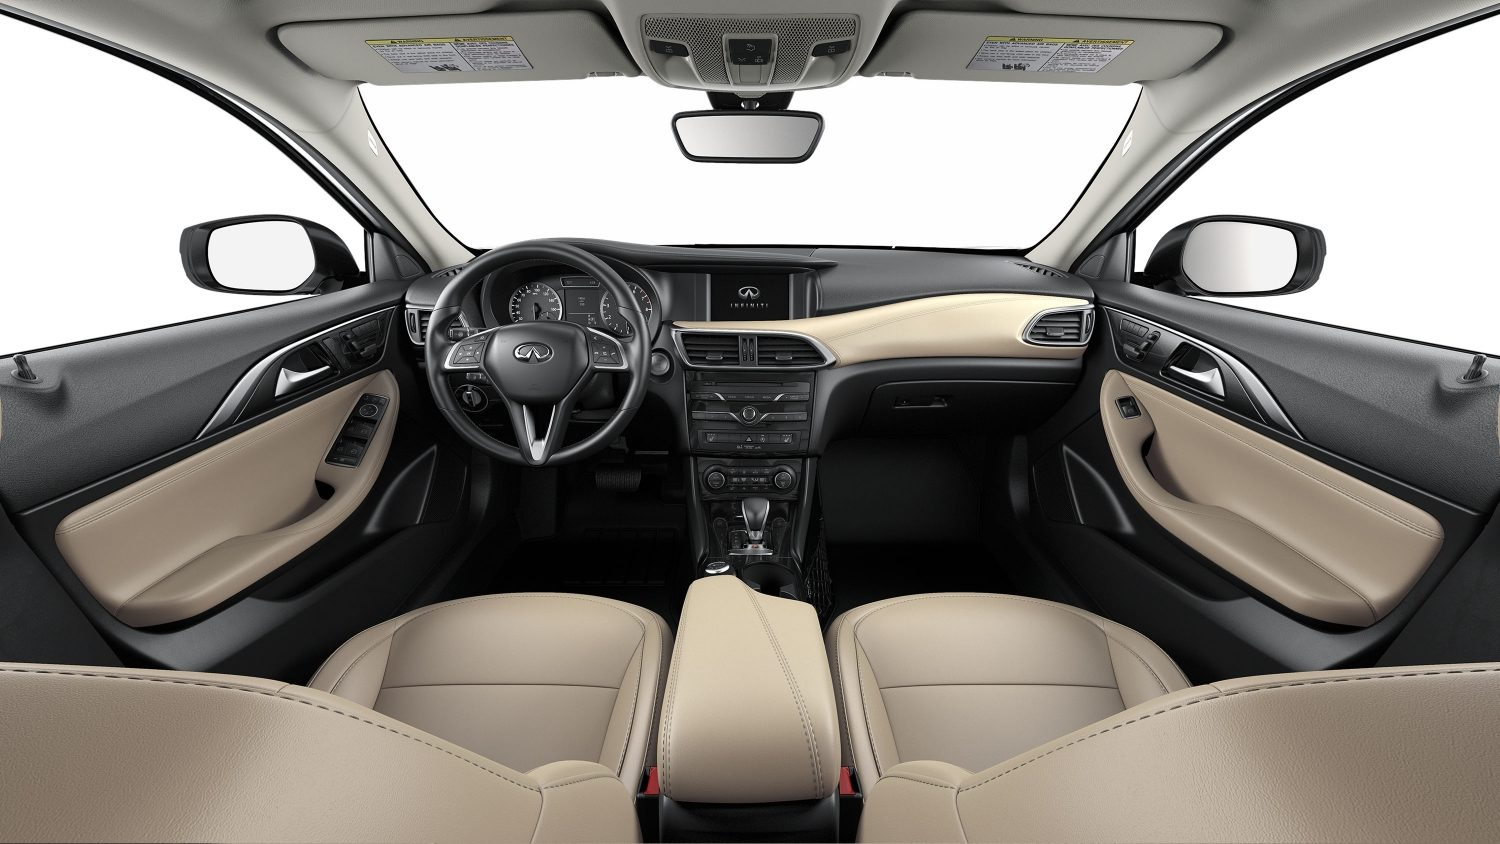 Luxury hatchback car beige interior